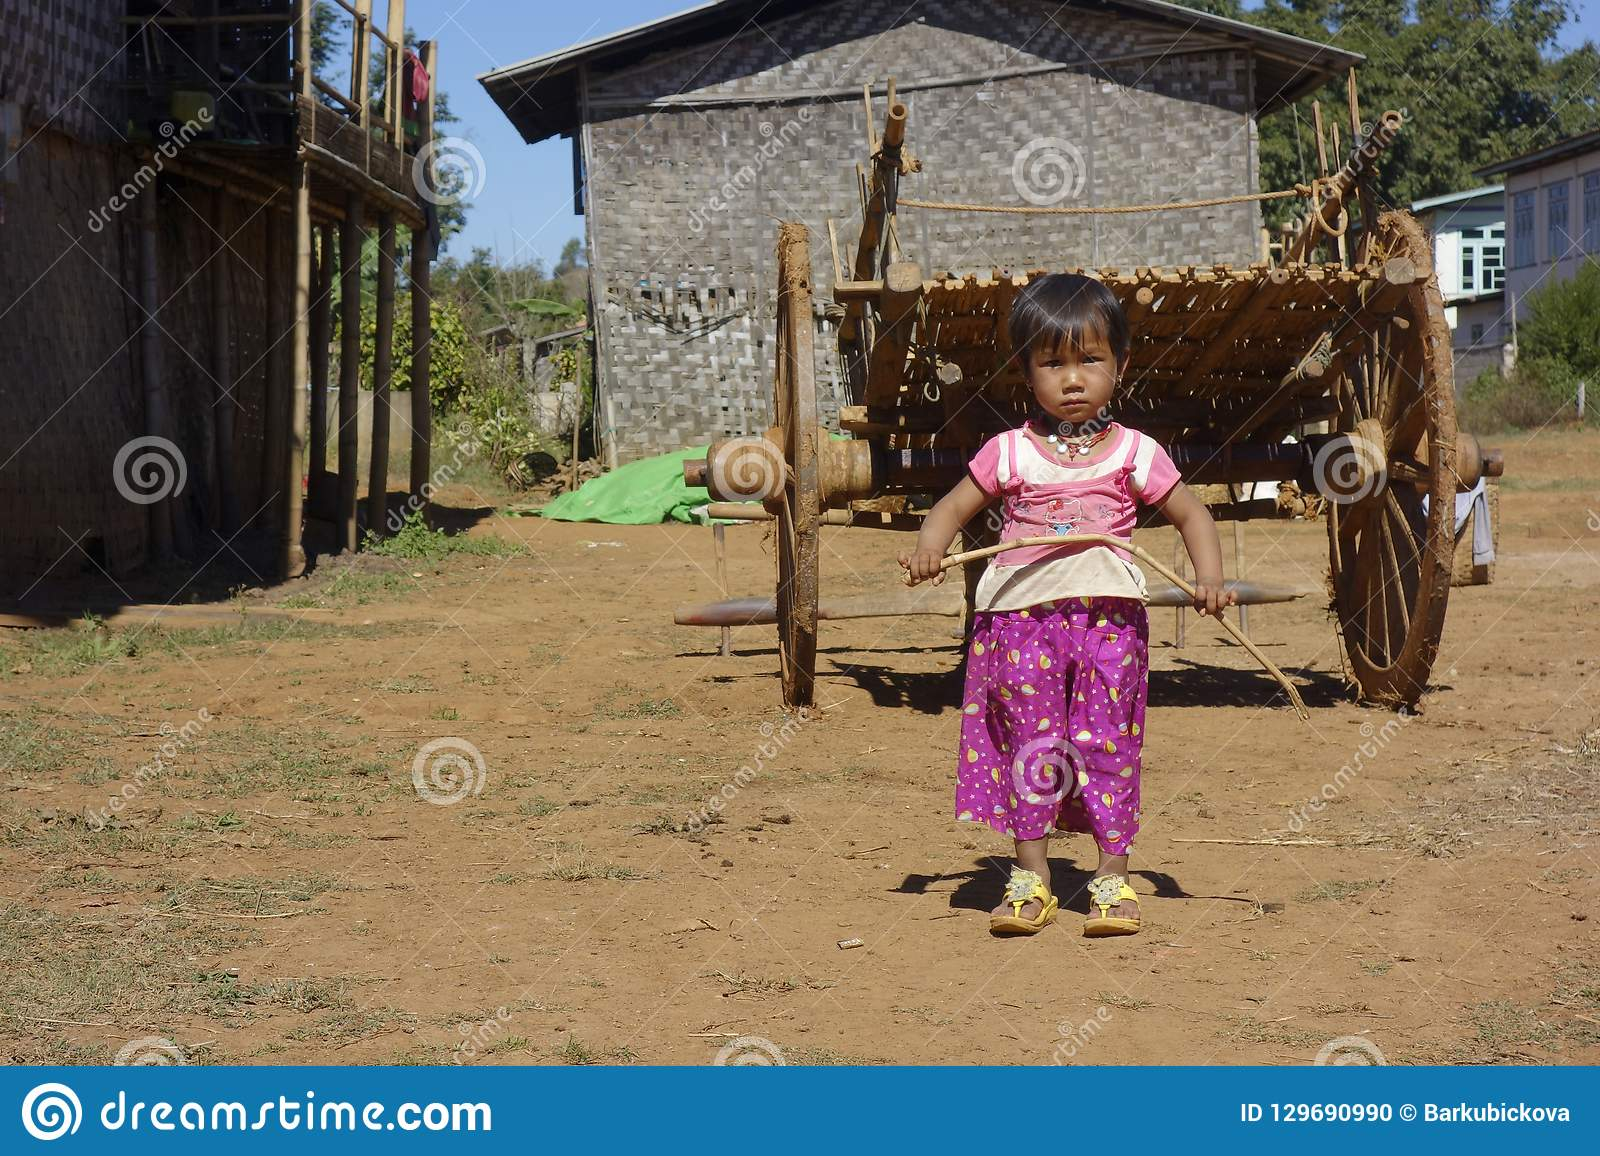 Near Kalaw, Shan state in Myanmar, 01-20-2018. Girl